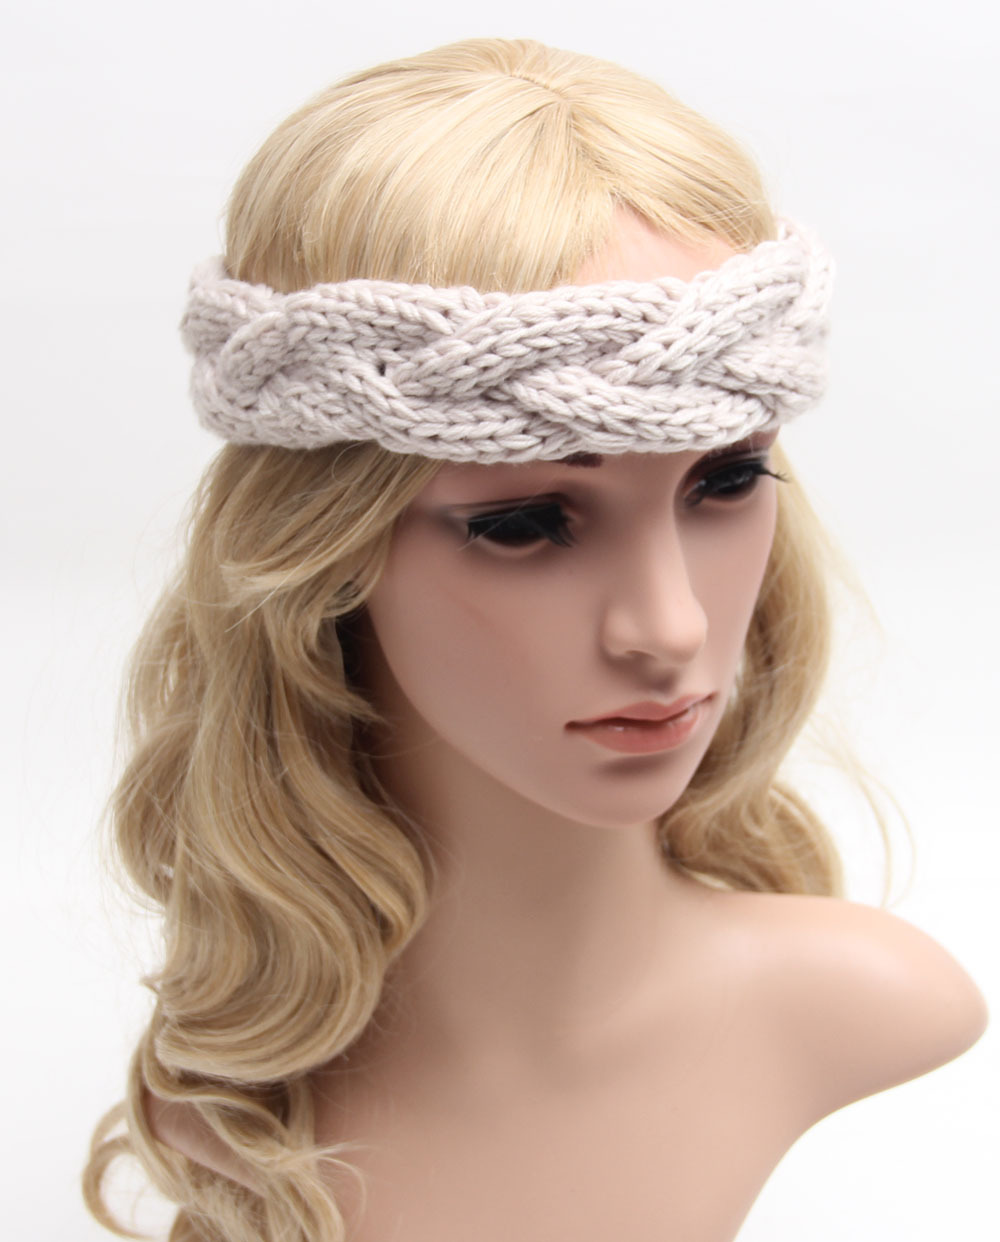 Free Crochet Pattern For Ladies Headband : Popular Crochet Patterns Headband-Buy Cheap Crochet ...